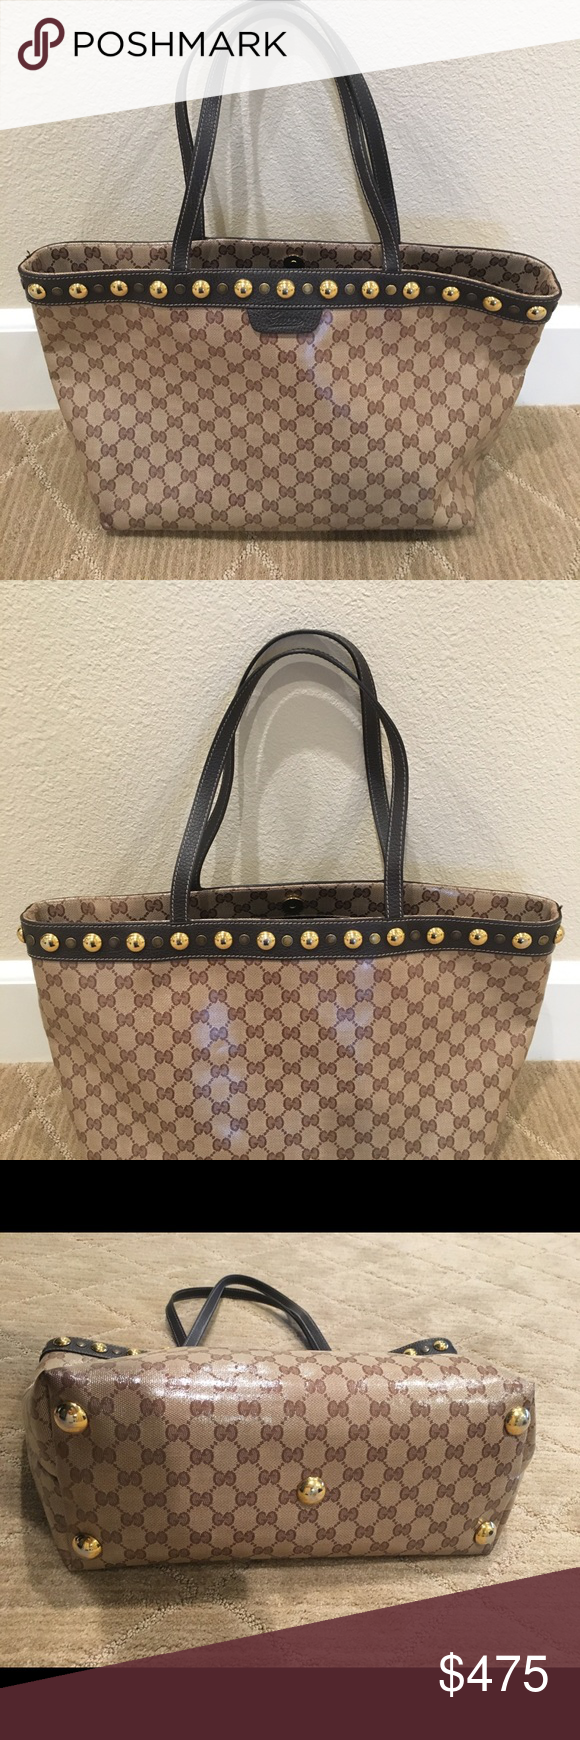 "f23bdb3a55de GUCCI CRYSTAL GG ""BABOUSKA"" TOTE Pre-Loved 100% Authentic GUCCI GG ""BABOUSKA""  Medium Tote Includes Dustbag Excellent Condition! Smoke Free Home Gucci Bags  ..."